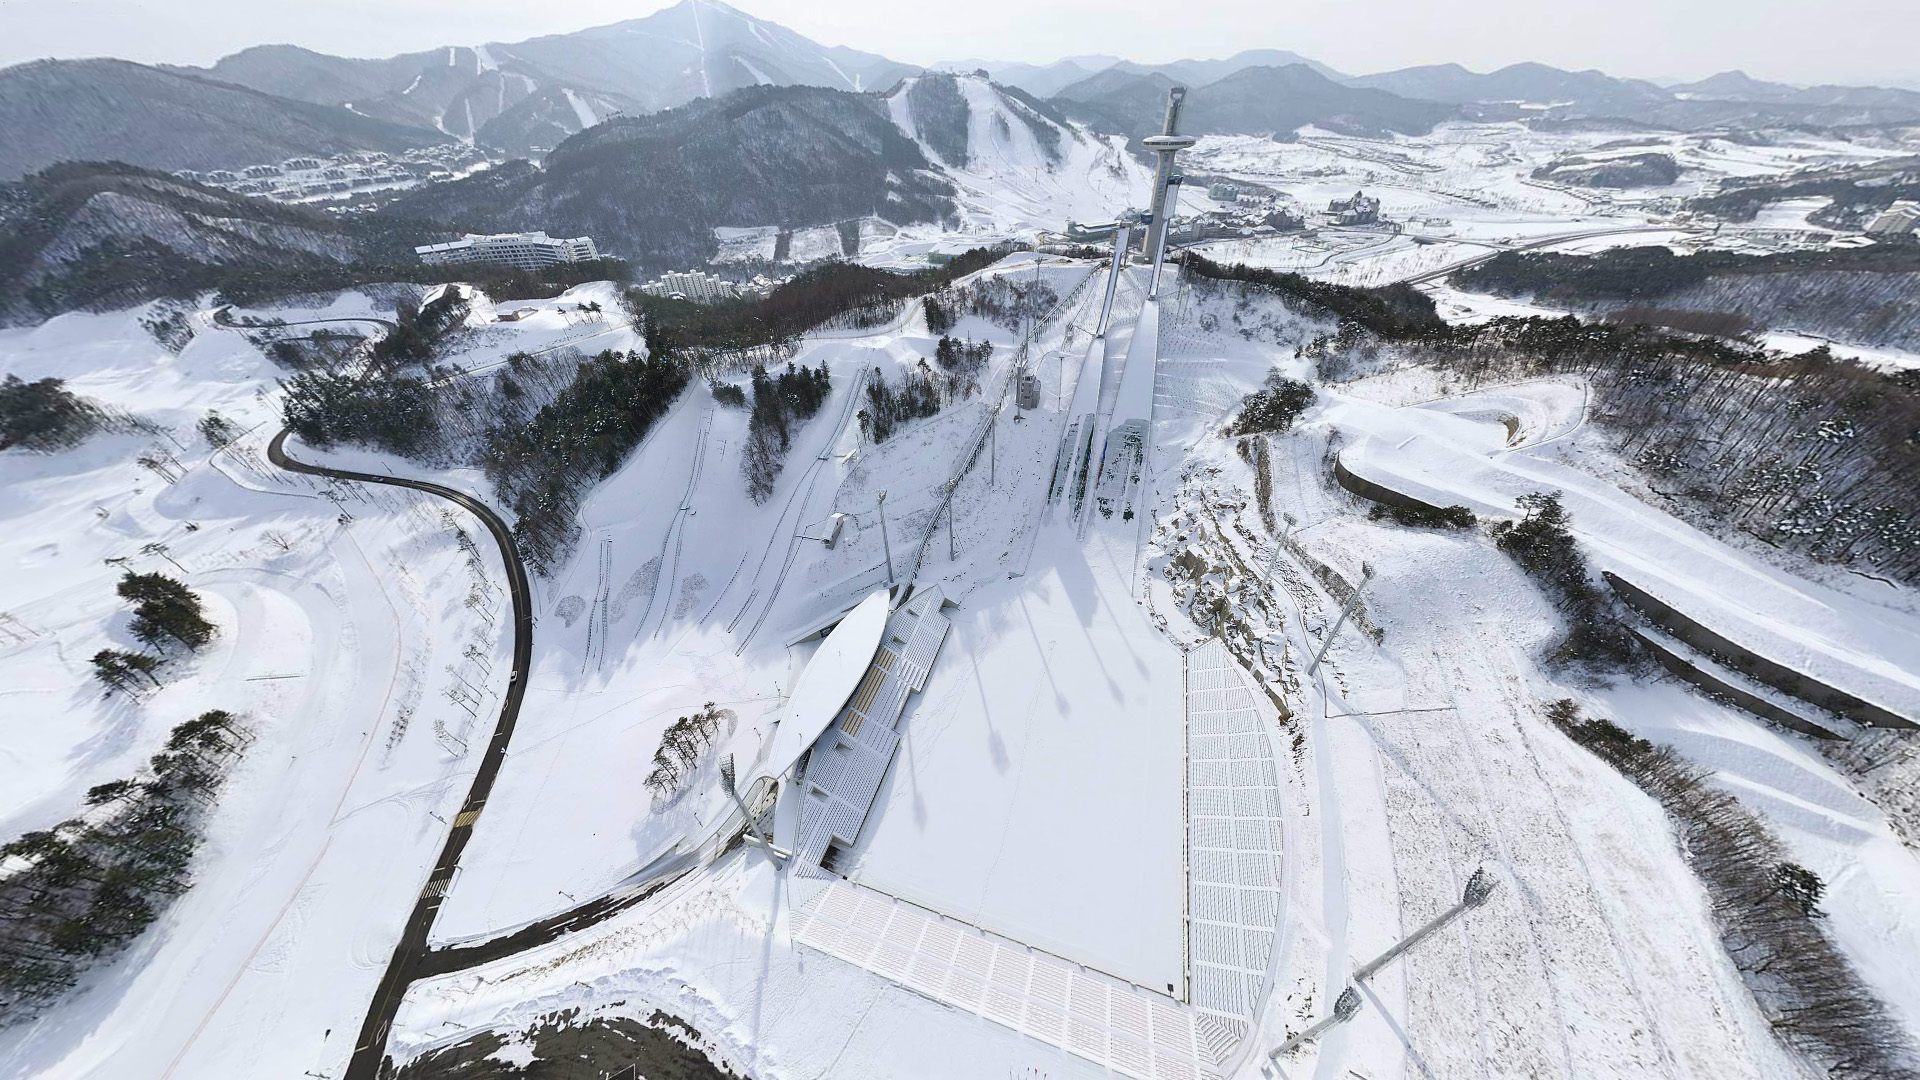 Winter sports competitions are already being held at PyeongChang's Alpensia facilities ahead of the 2018 Olympics, giving Korea a jump-ahead of most world-level sports competitions. Image courtesy Alpensia.